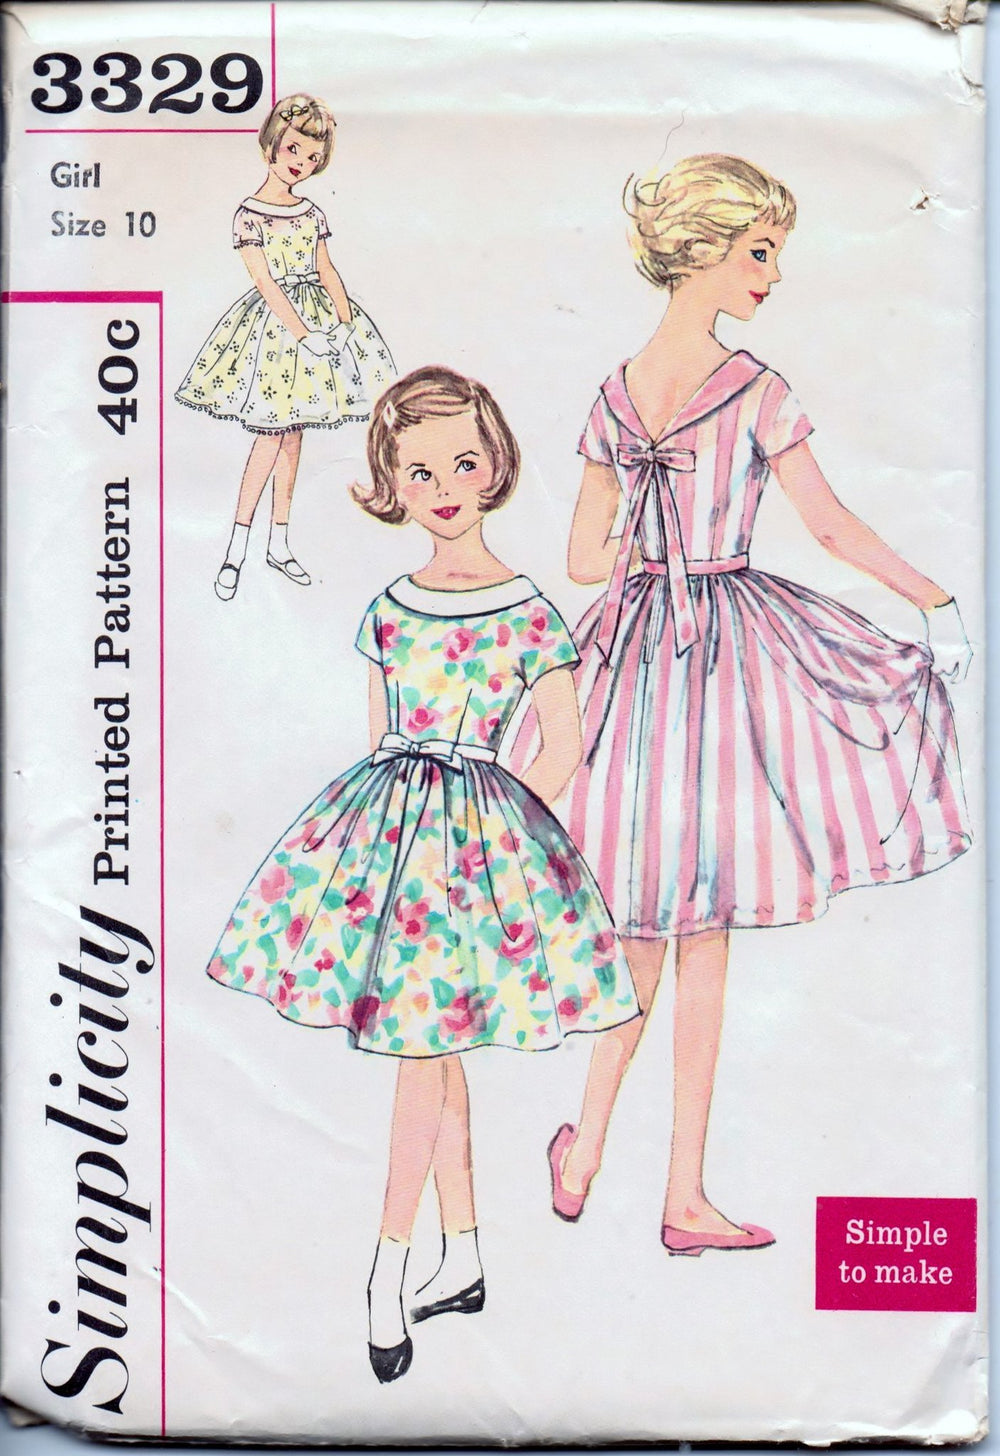 Simplicity 3329 Young Girls Dress with Roll Collar Simple To Make Vintage 1960's Sewing Pattern - VintageStitching - Vintage Sewing Patterns